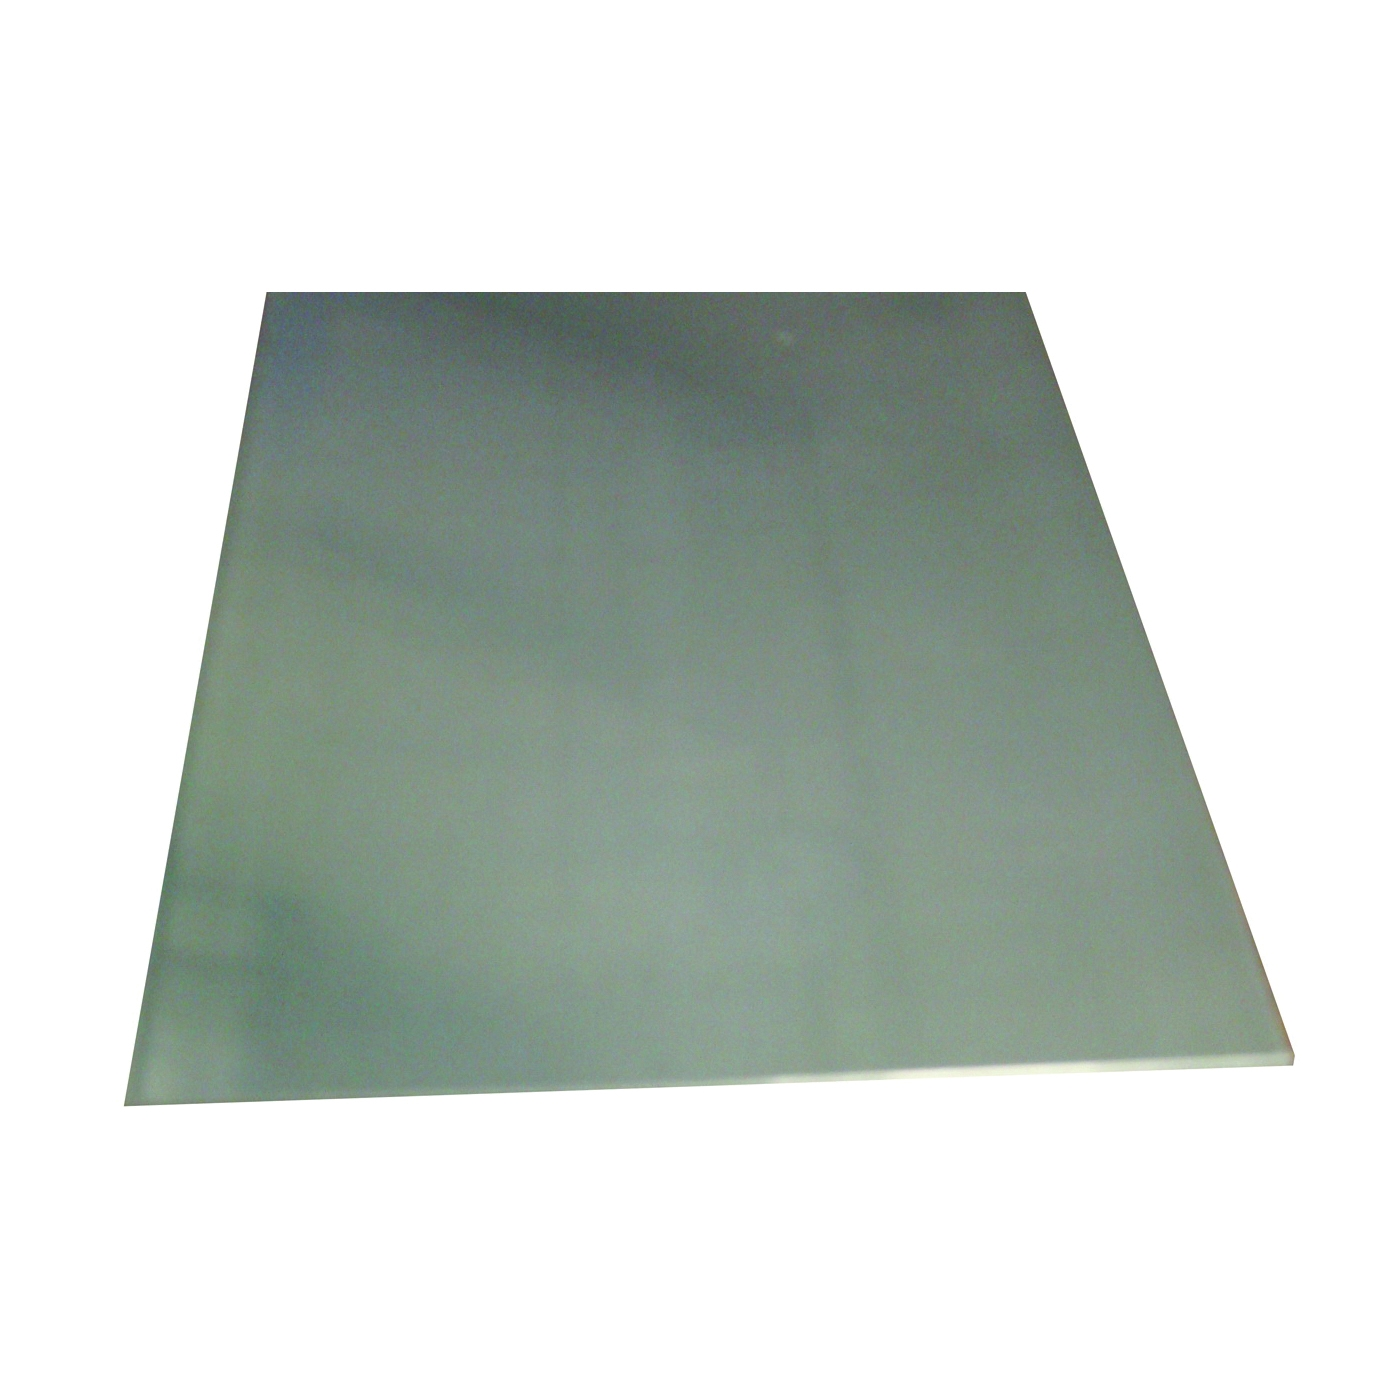 Picture of K & S 87181 Metal Sheet, 30 Thick Material, 6 in W, 12 in L, Stainless Steel